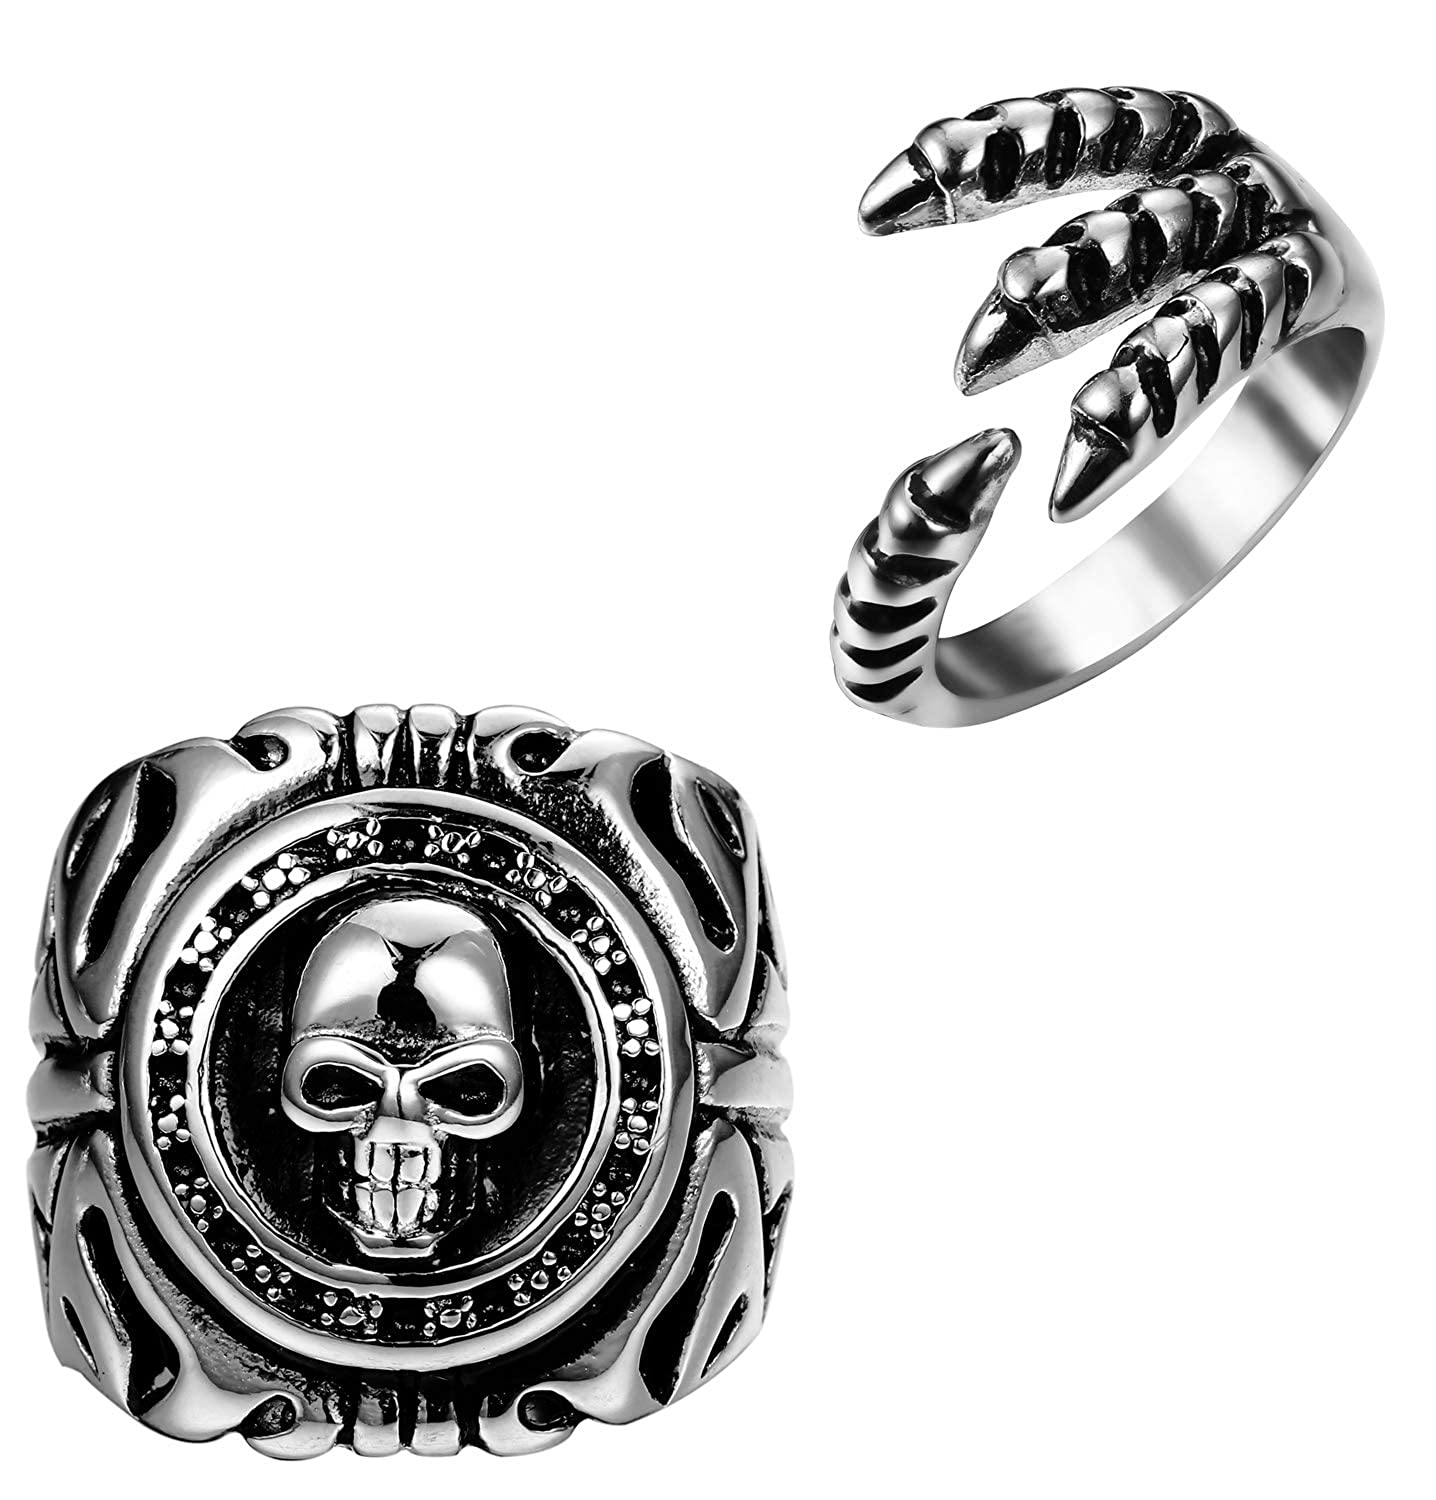 Udalyn 2 Pcs Stainless Steel Biker Ring for Men Vintage Punk Skull Dragon Claw Band Rings RS03